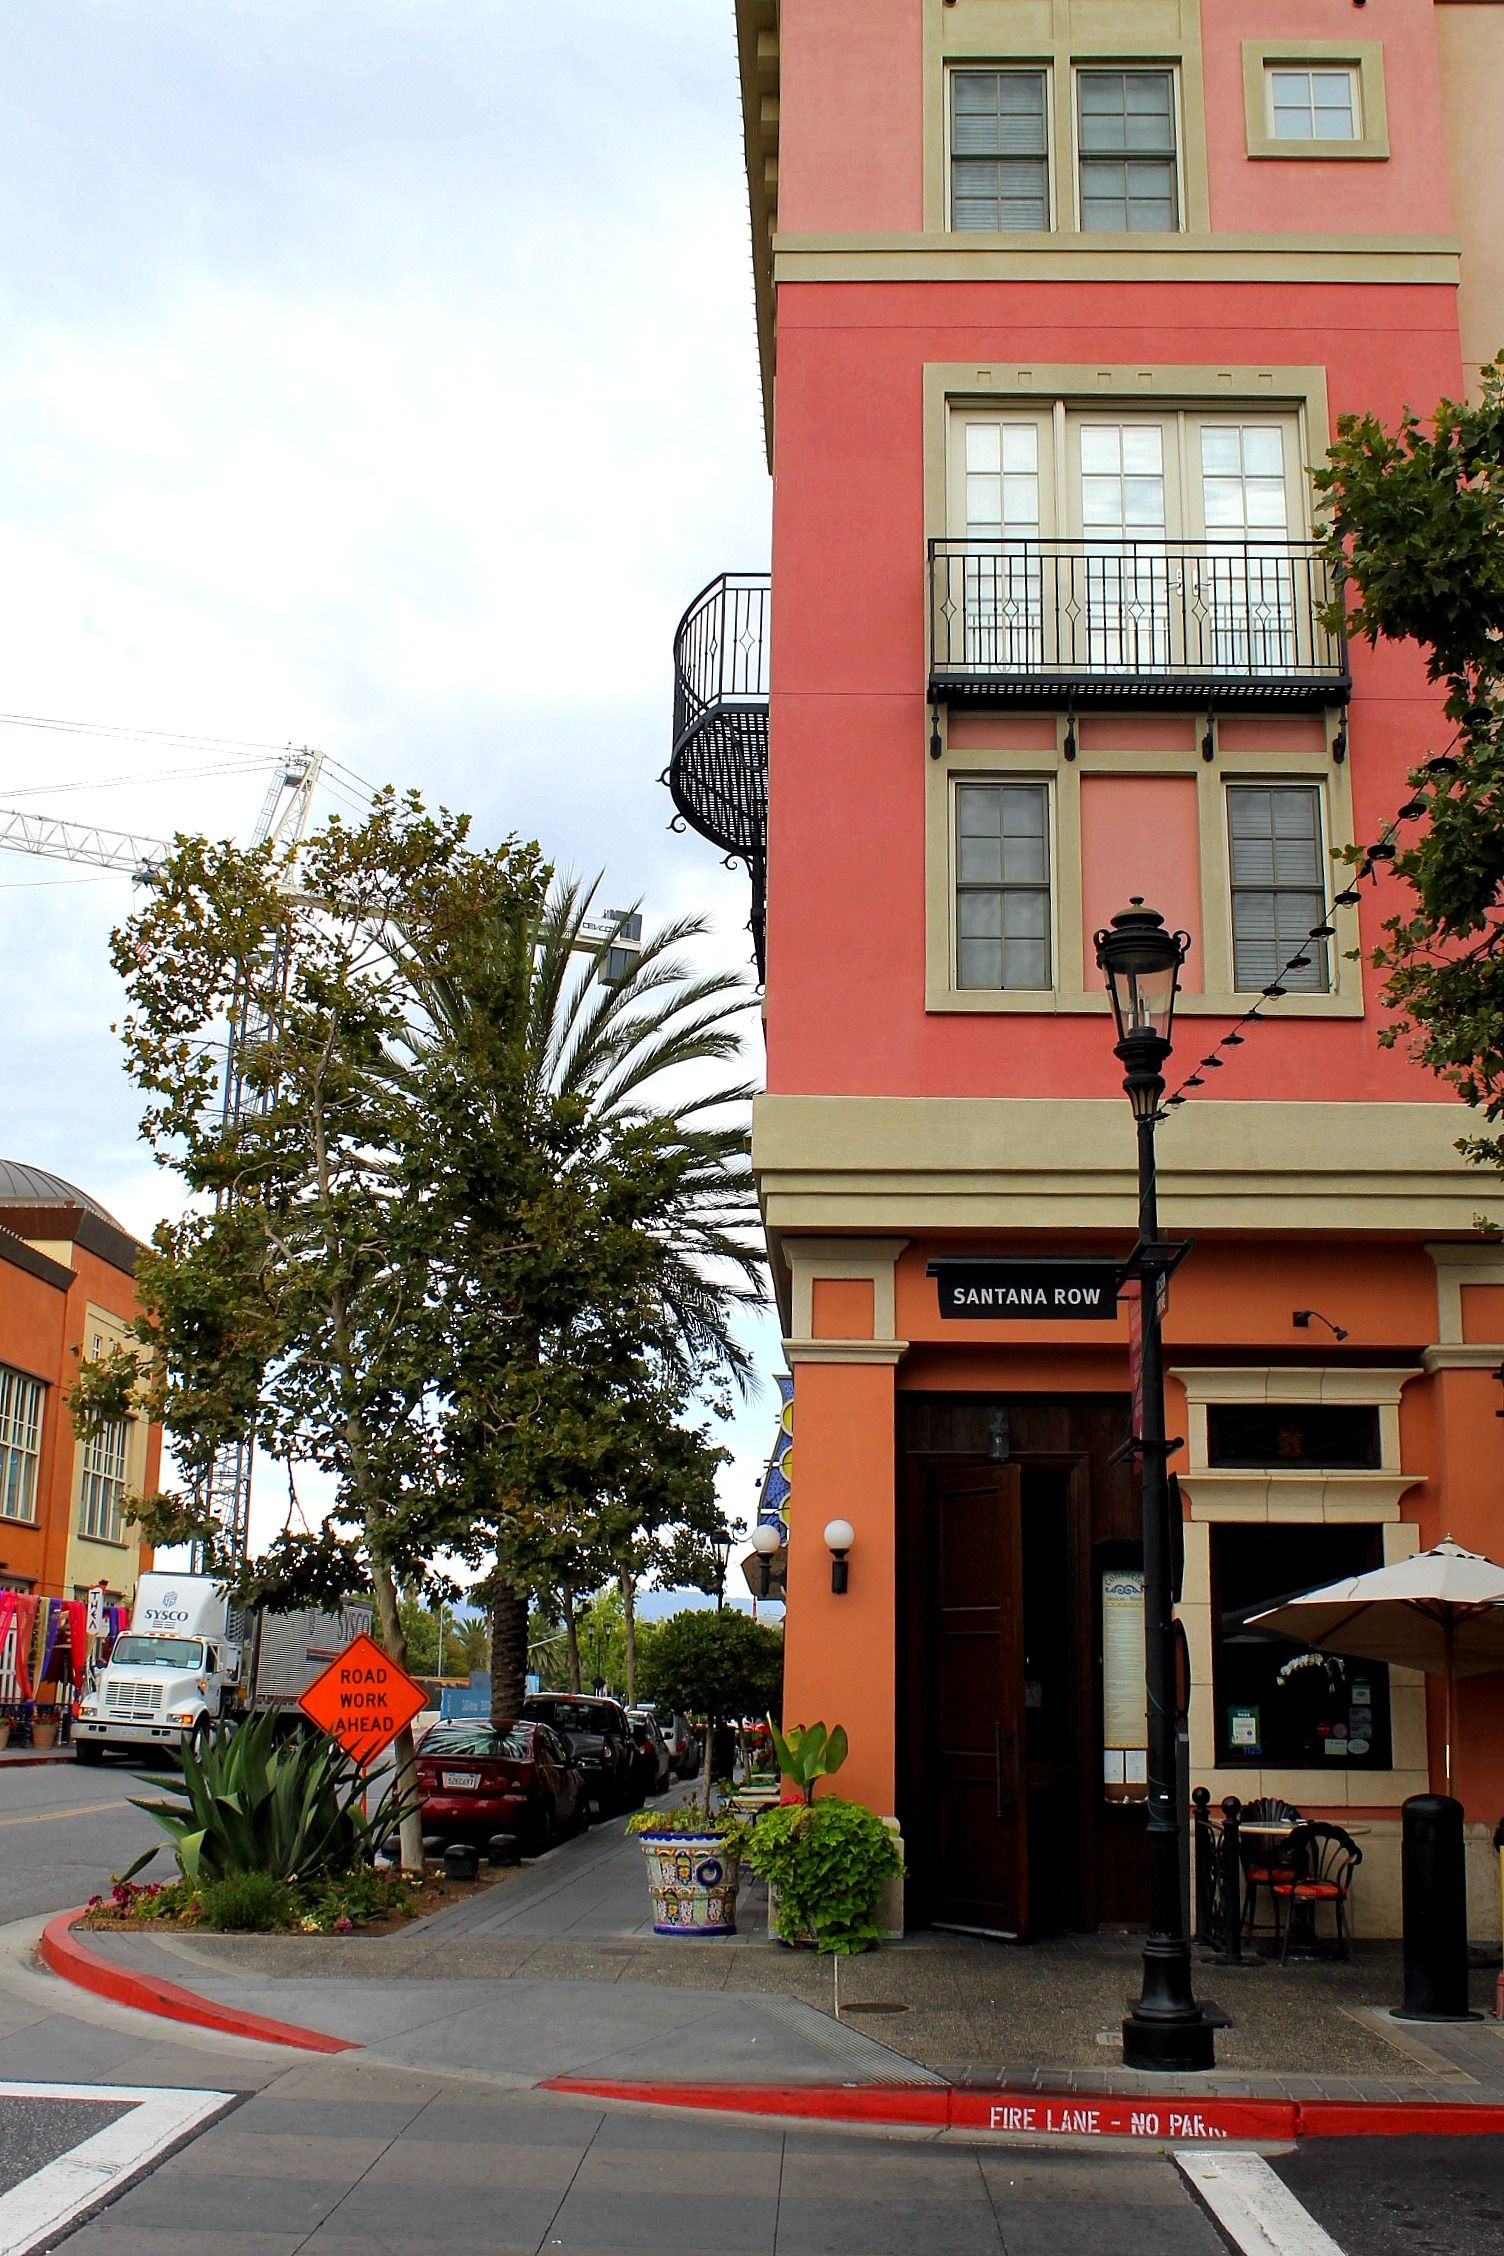 6 Things to do in San Jose, California in a Day (With images) | San jose california